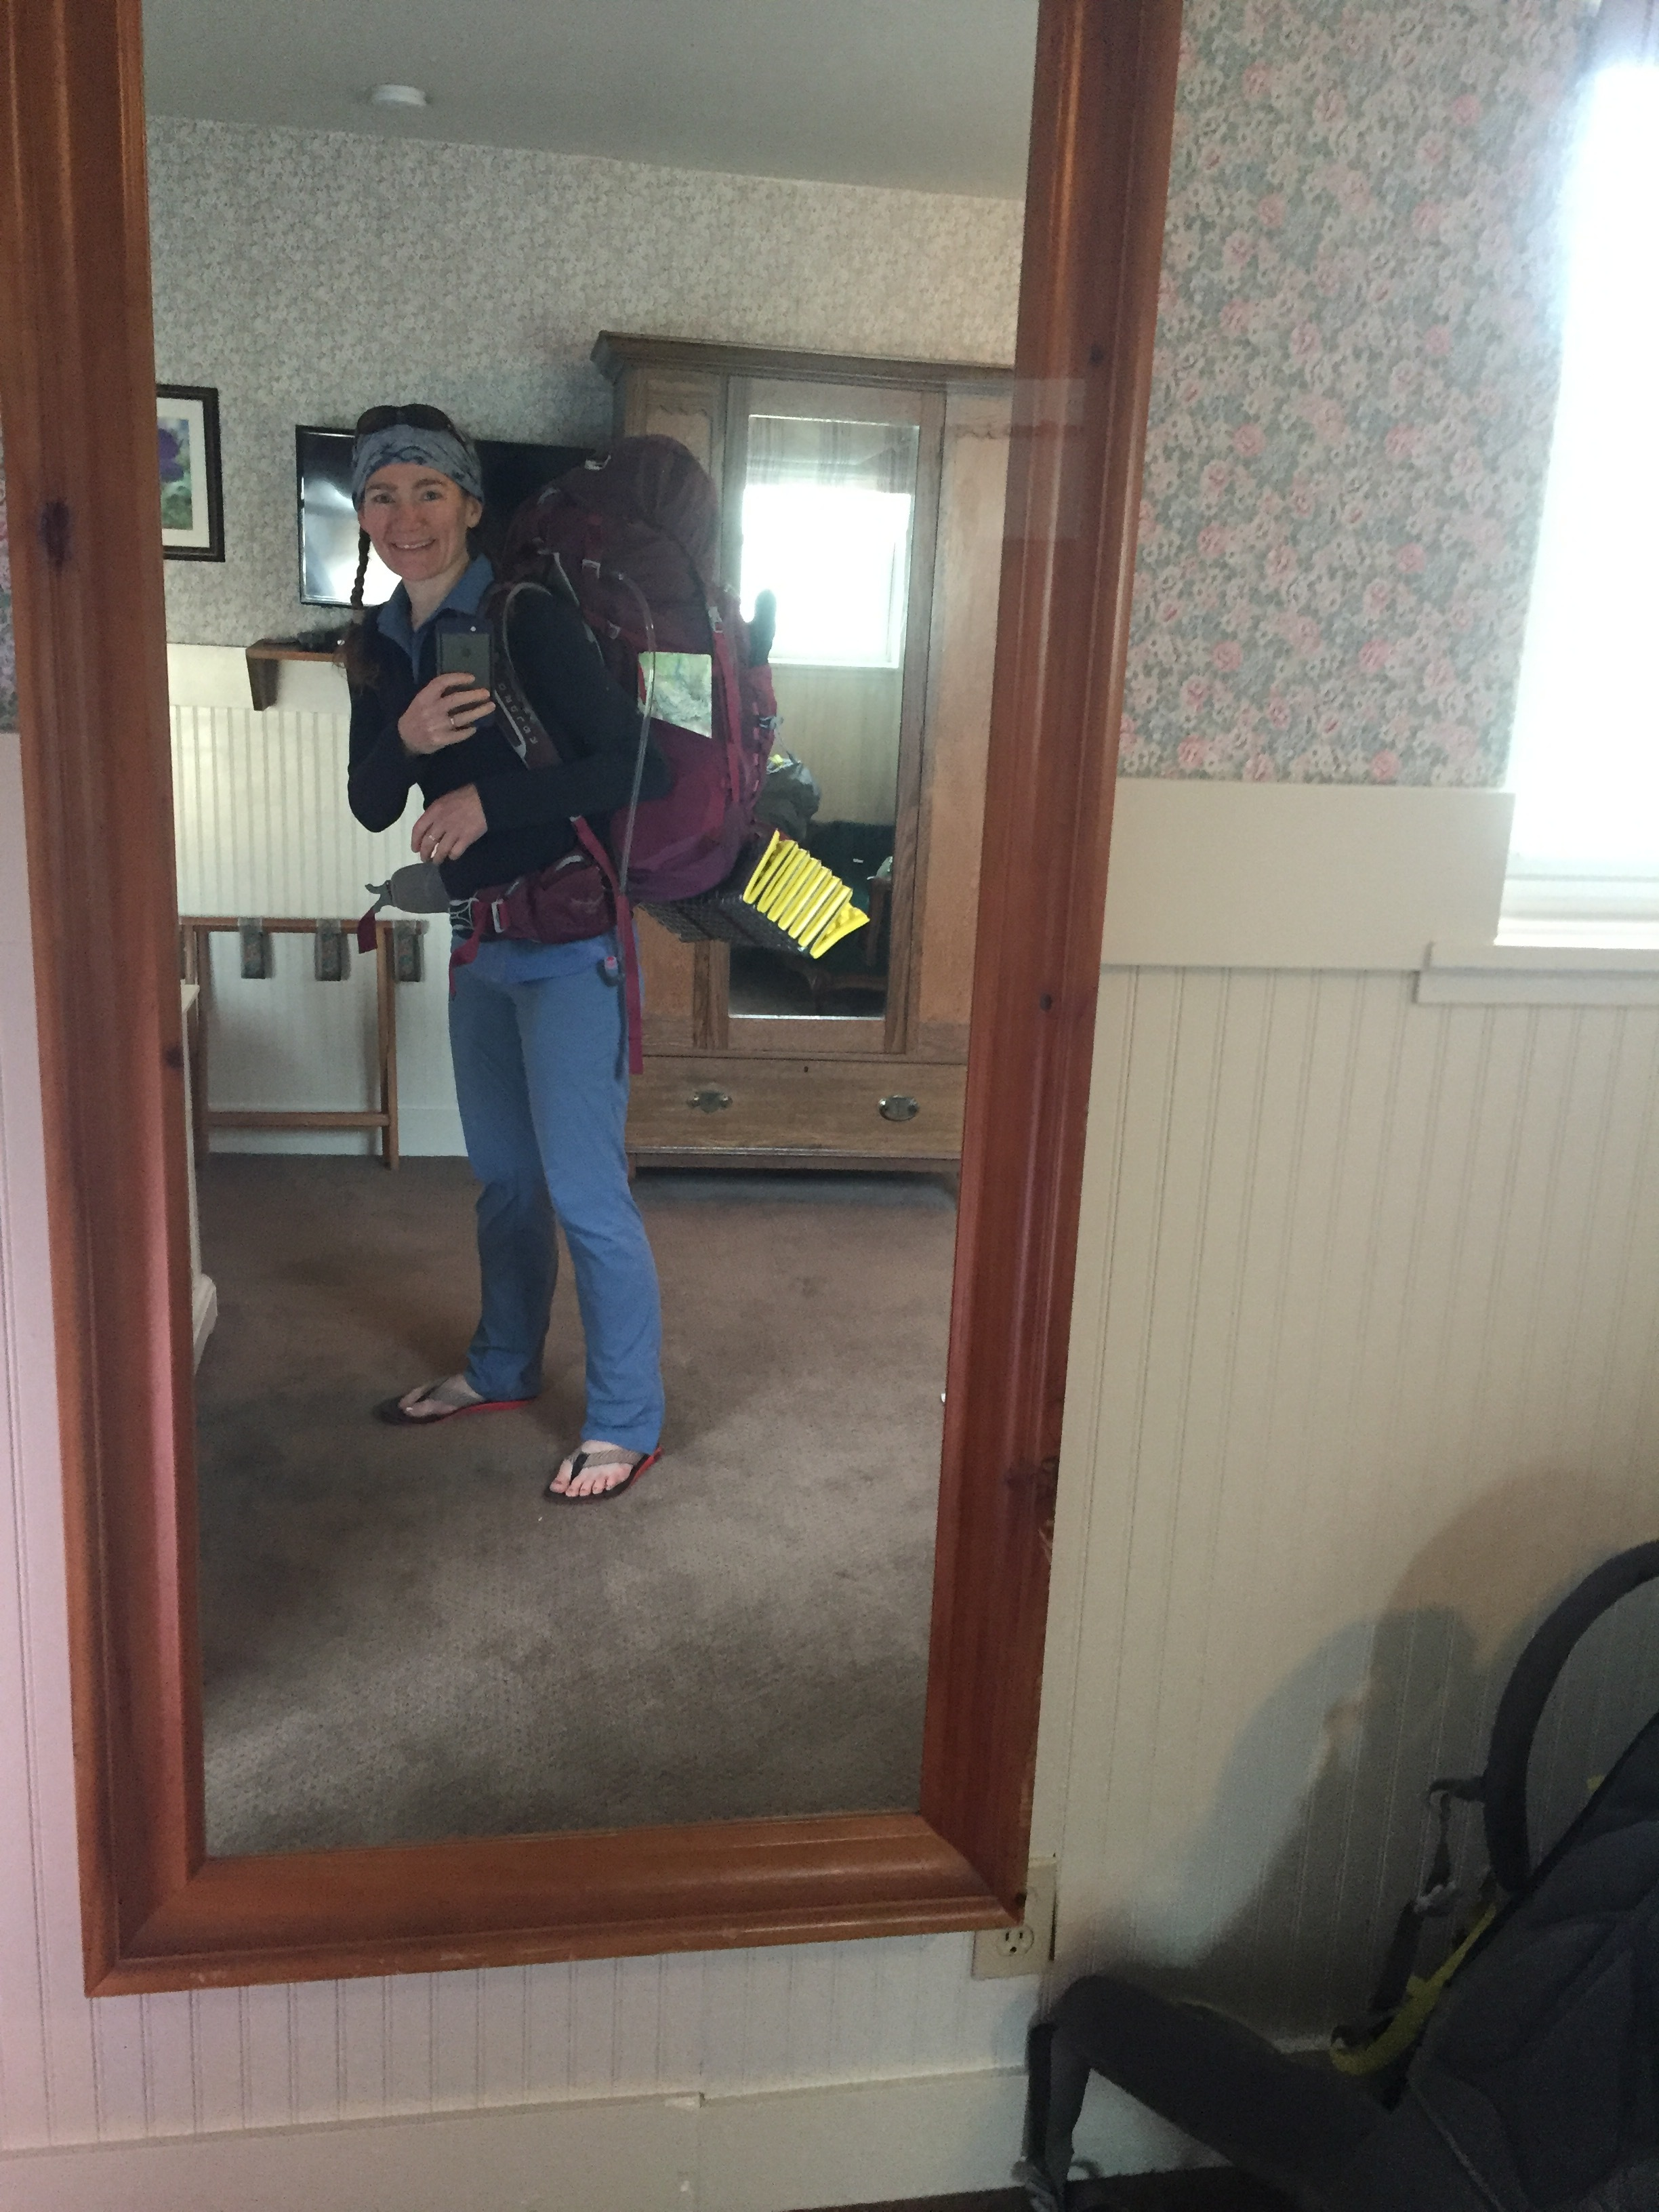 Goofy morning mirror-selfie at the Hotel Charlotte